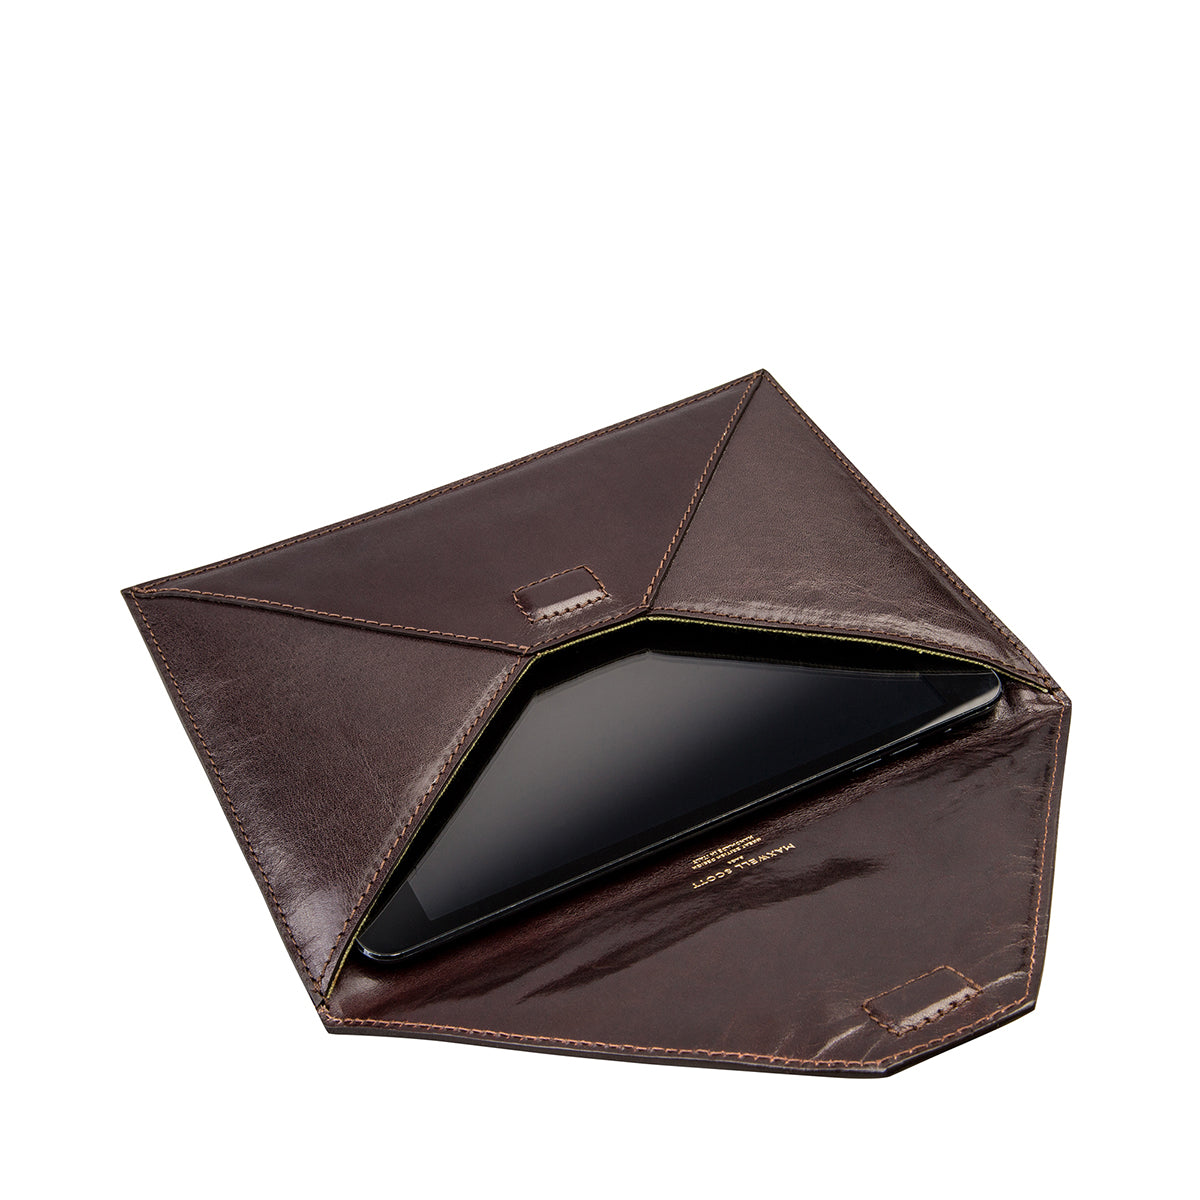 Image 4 of the 'Pico' Dark Chocolate Veg-Tanned Leather Mini Tablet Case